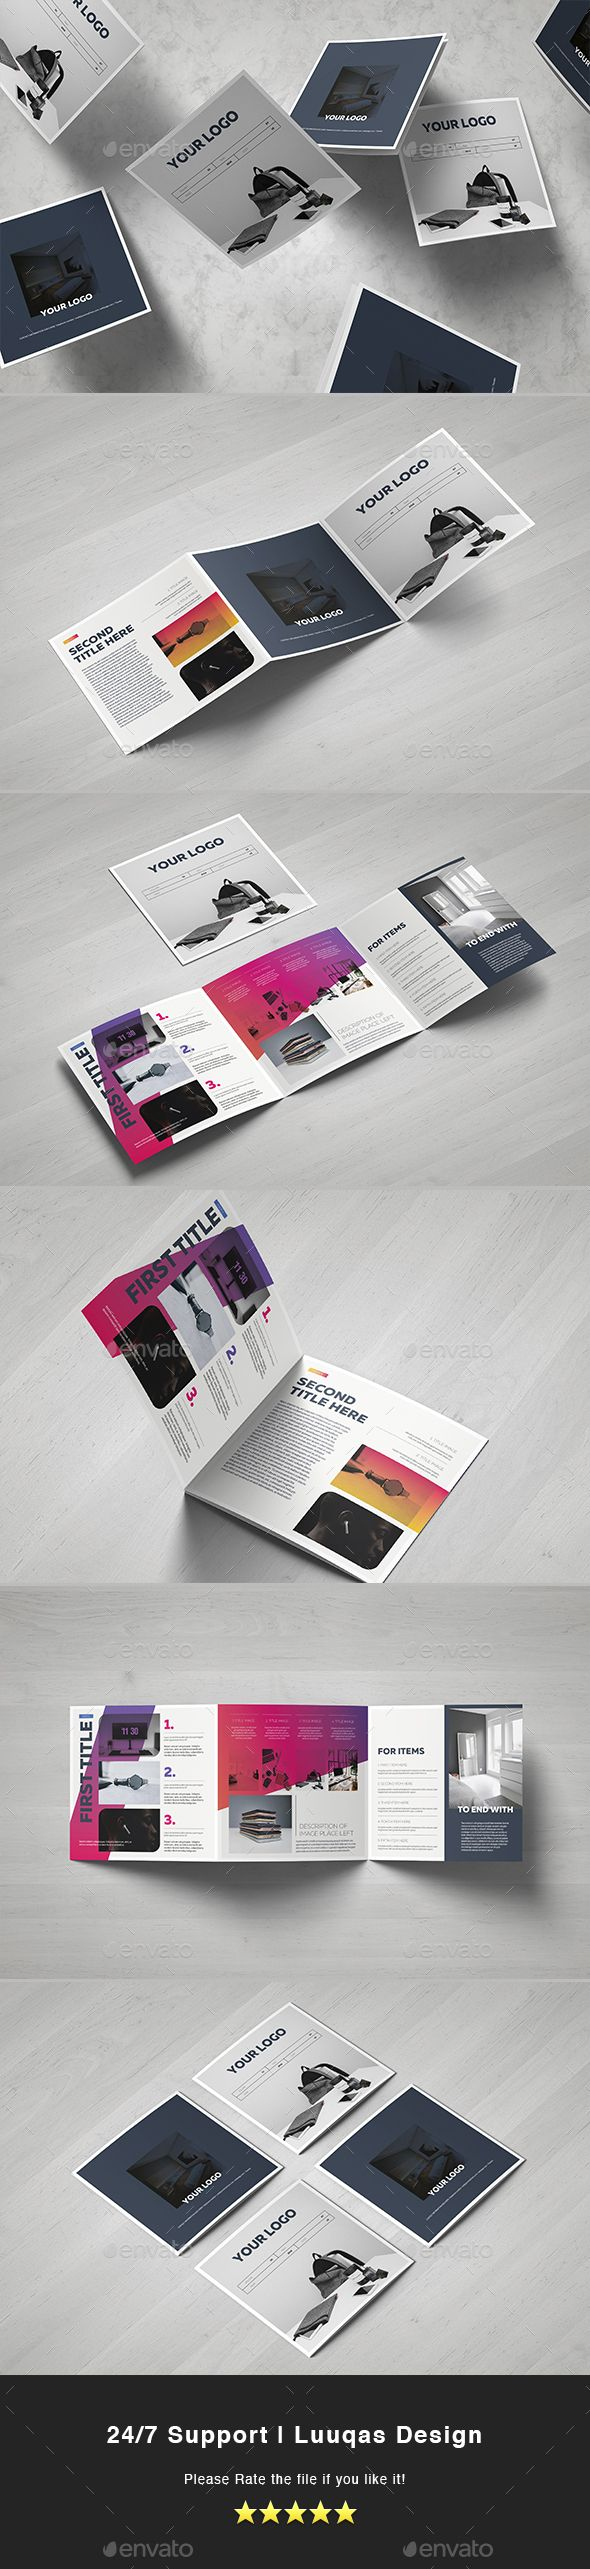 Gradient Square Trifold Brochure Template Vector EPS